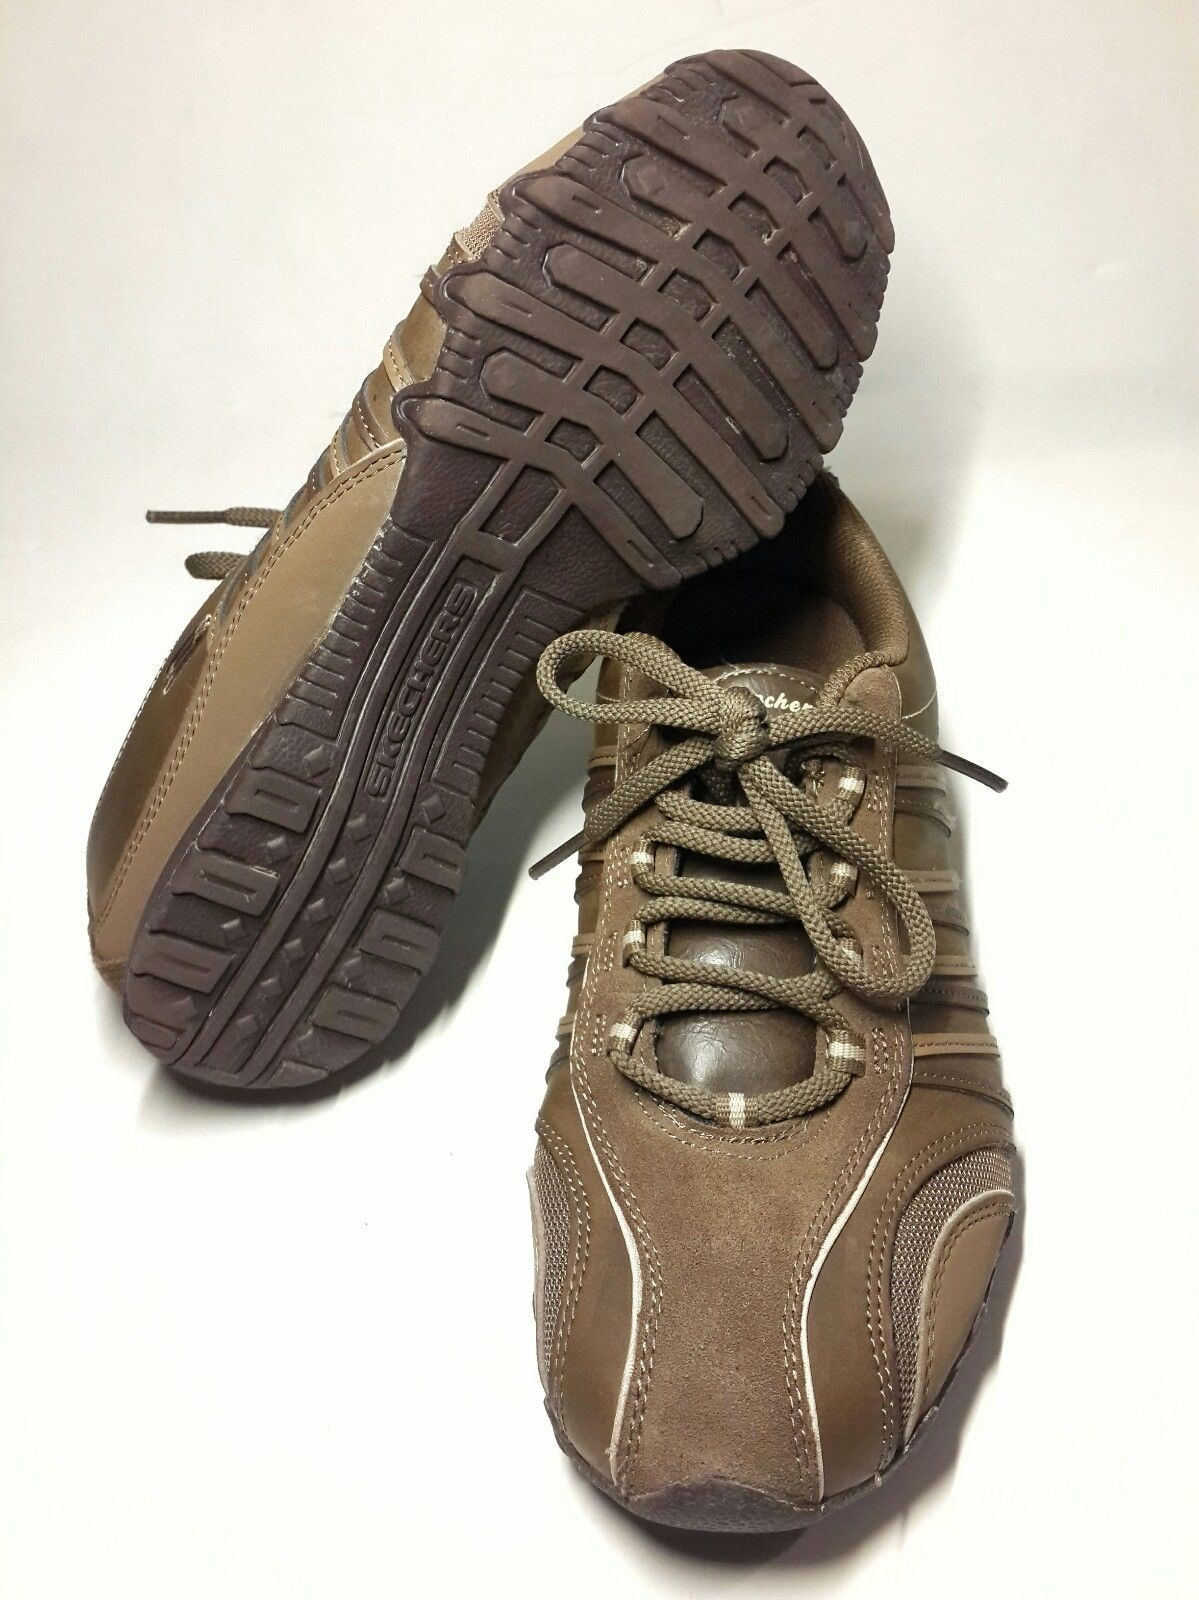 Skechers Women's Brown Leather Sneakers Tennis Shoes Size 9.5